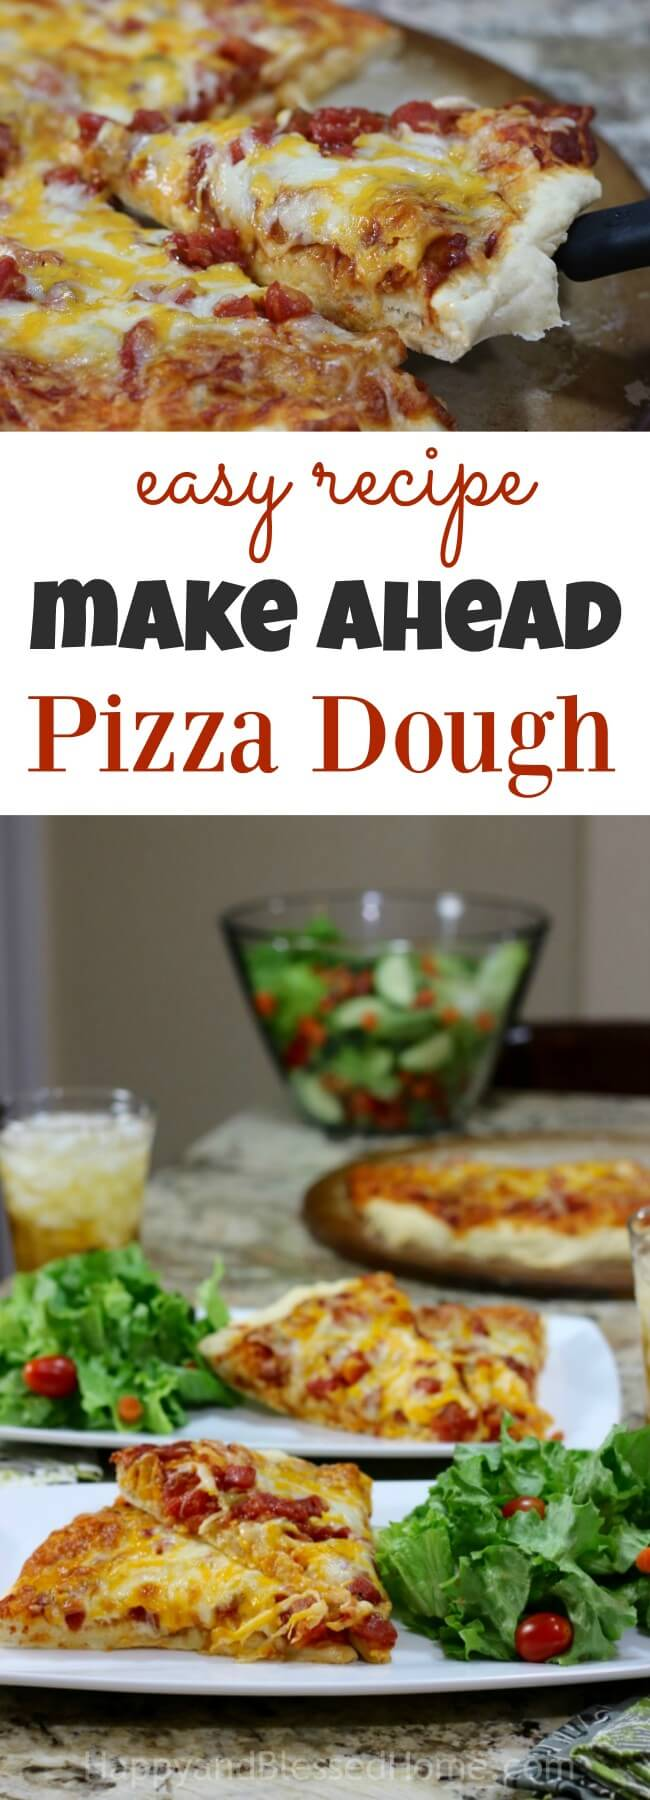 ... One Click Download of this easy recipe for Make Ahead Pizza Dough